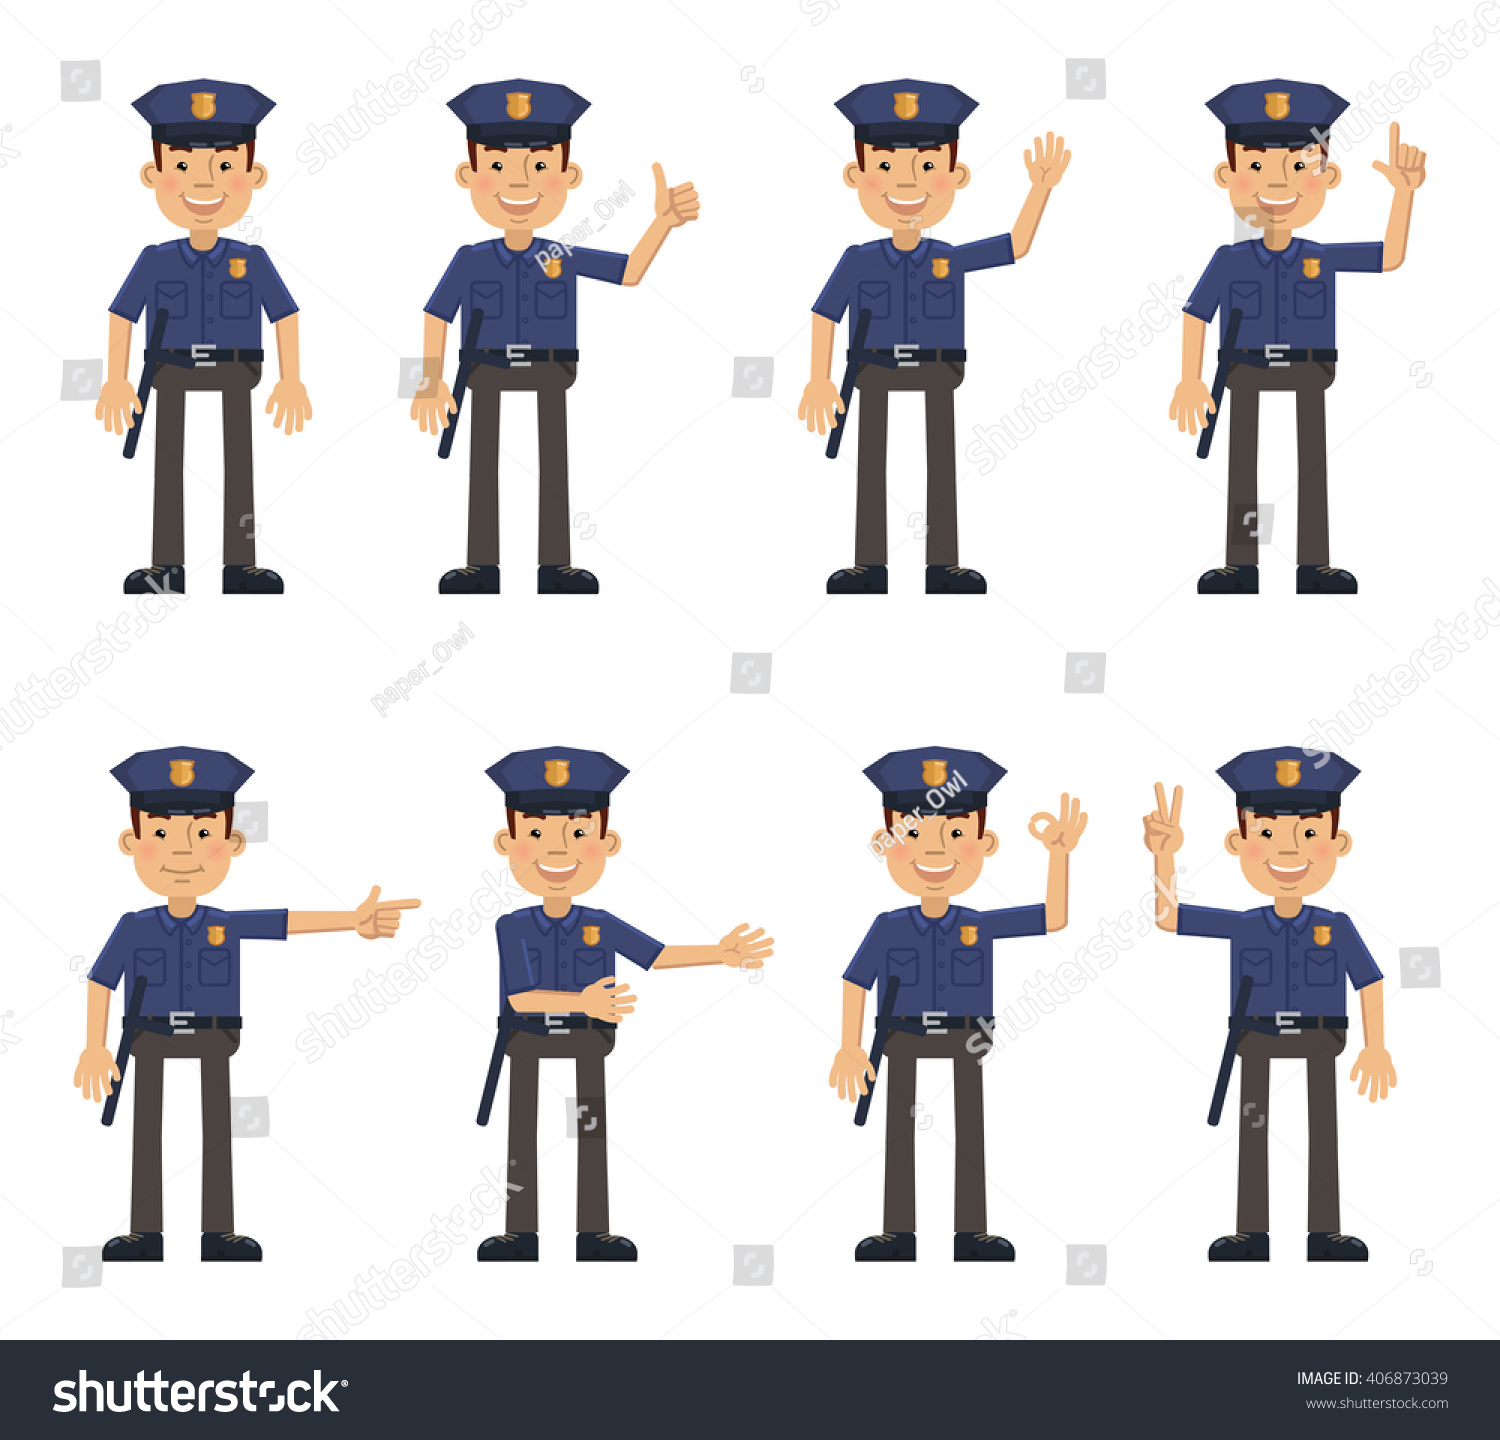 Set Policeman Characters Showing Different Hand 406873039 additionally Dead Pine Forest In Ink By John in addition Awesome Gesture From Liverpool Star moreover B7 in addition Lighthouse. on gesture drawing website